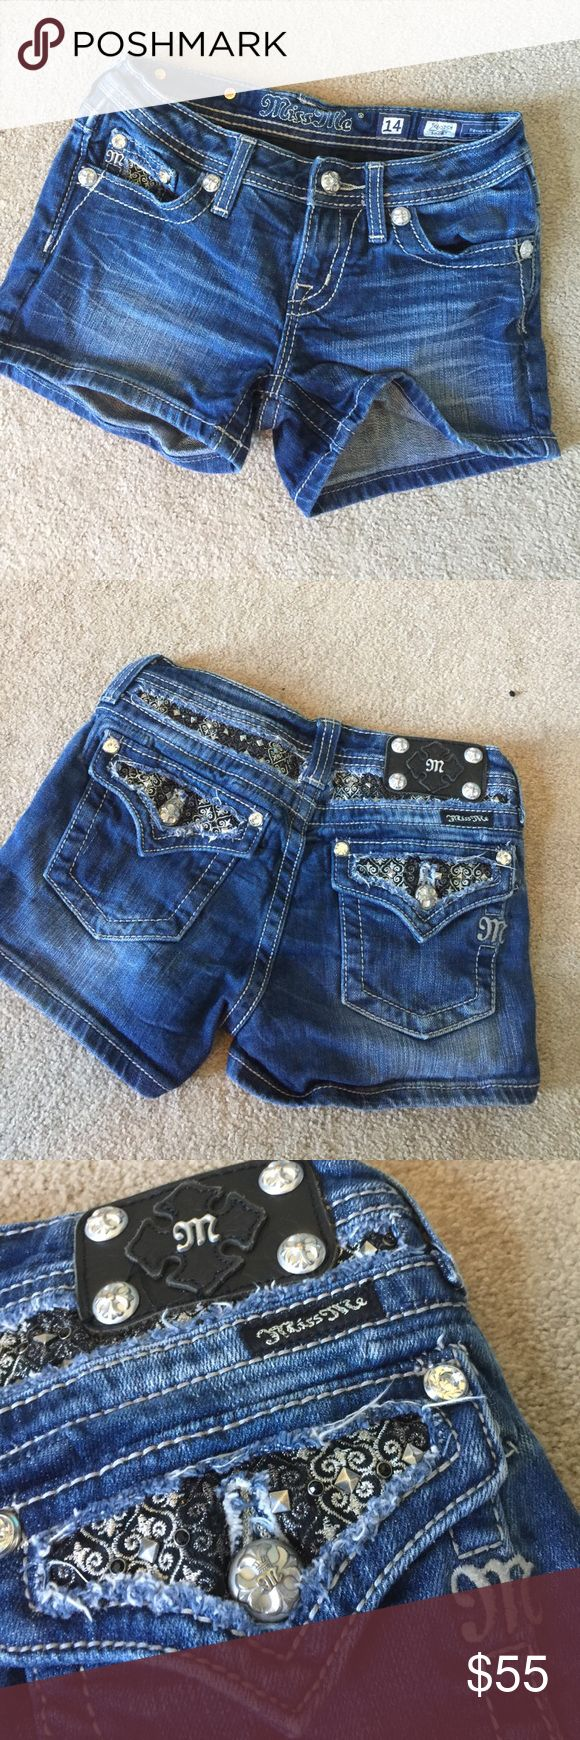 Girls miss me jeans shorts 98% cotton 2% elastane. In excellent condition. 3 inch inseam. ND Miss Me Bottoms Shorts